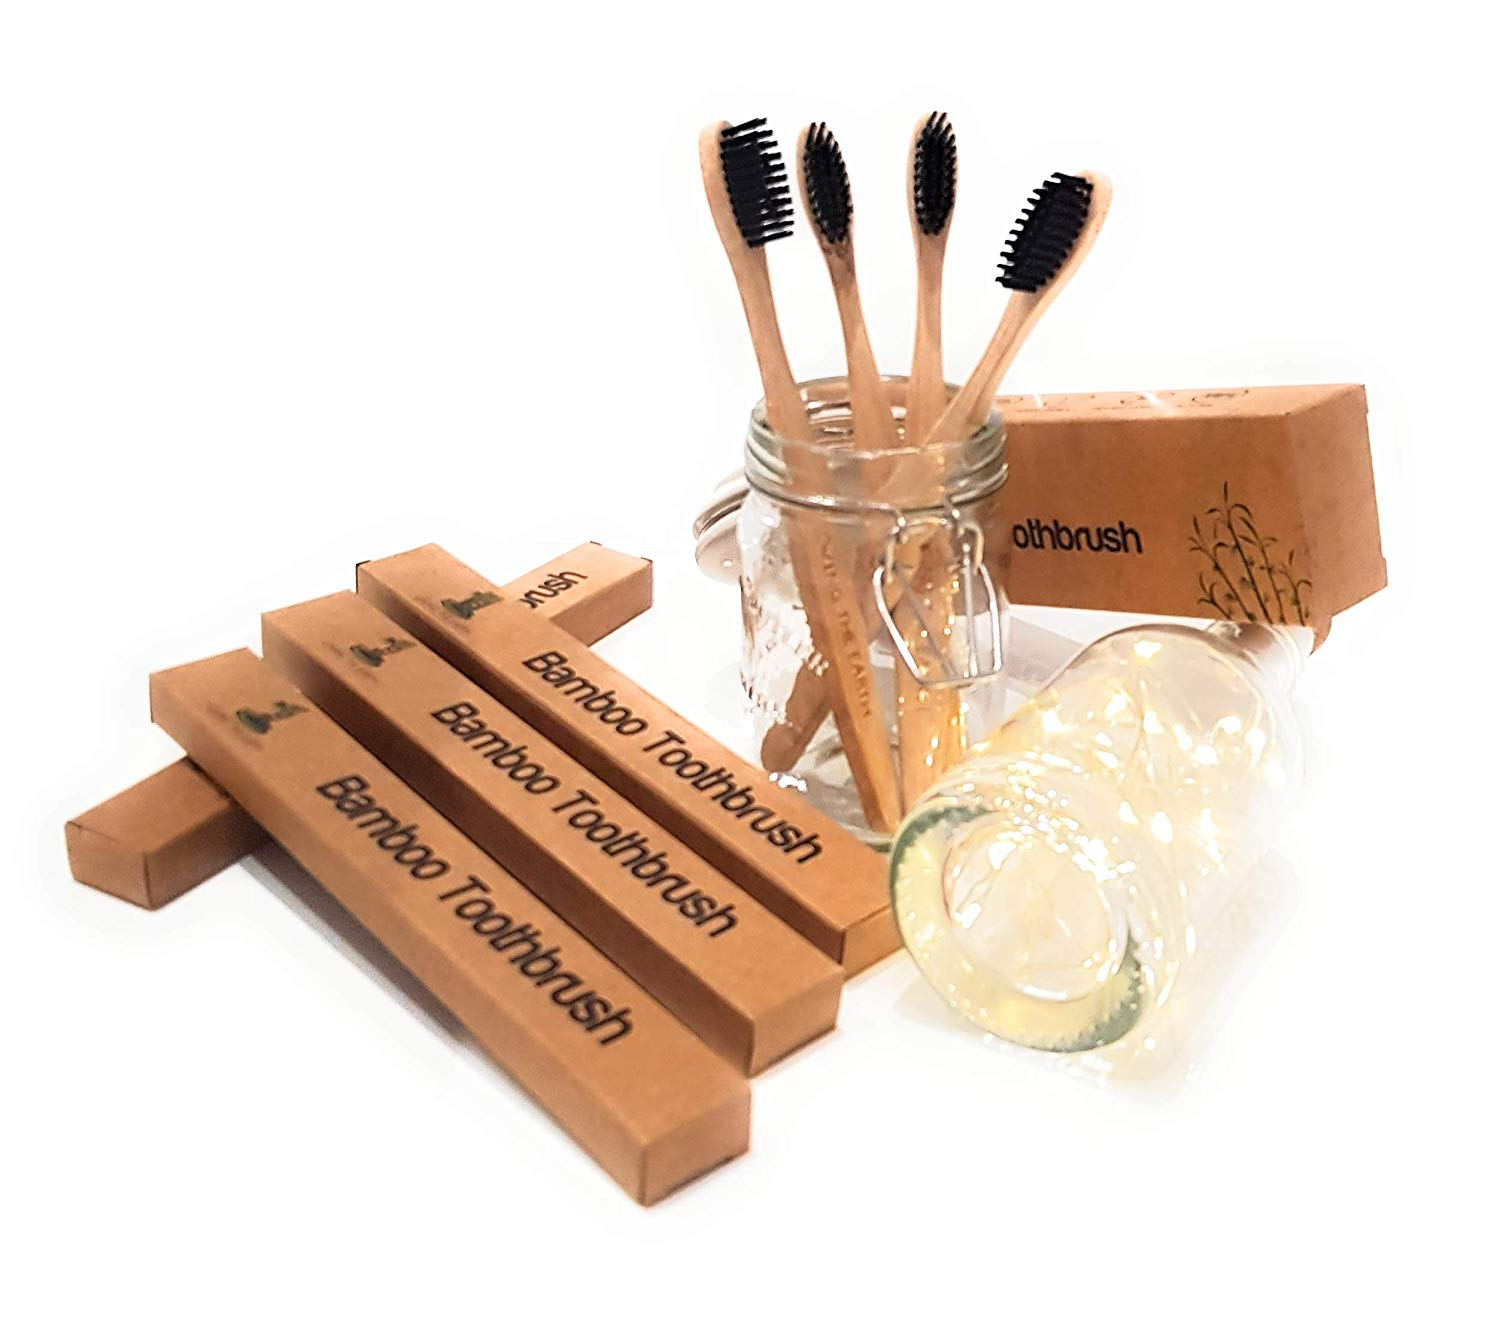 4 Bamboo Toothbrushes Enhanced with Medium Black Charcoal Infused Bristles